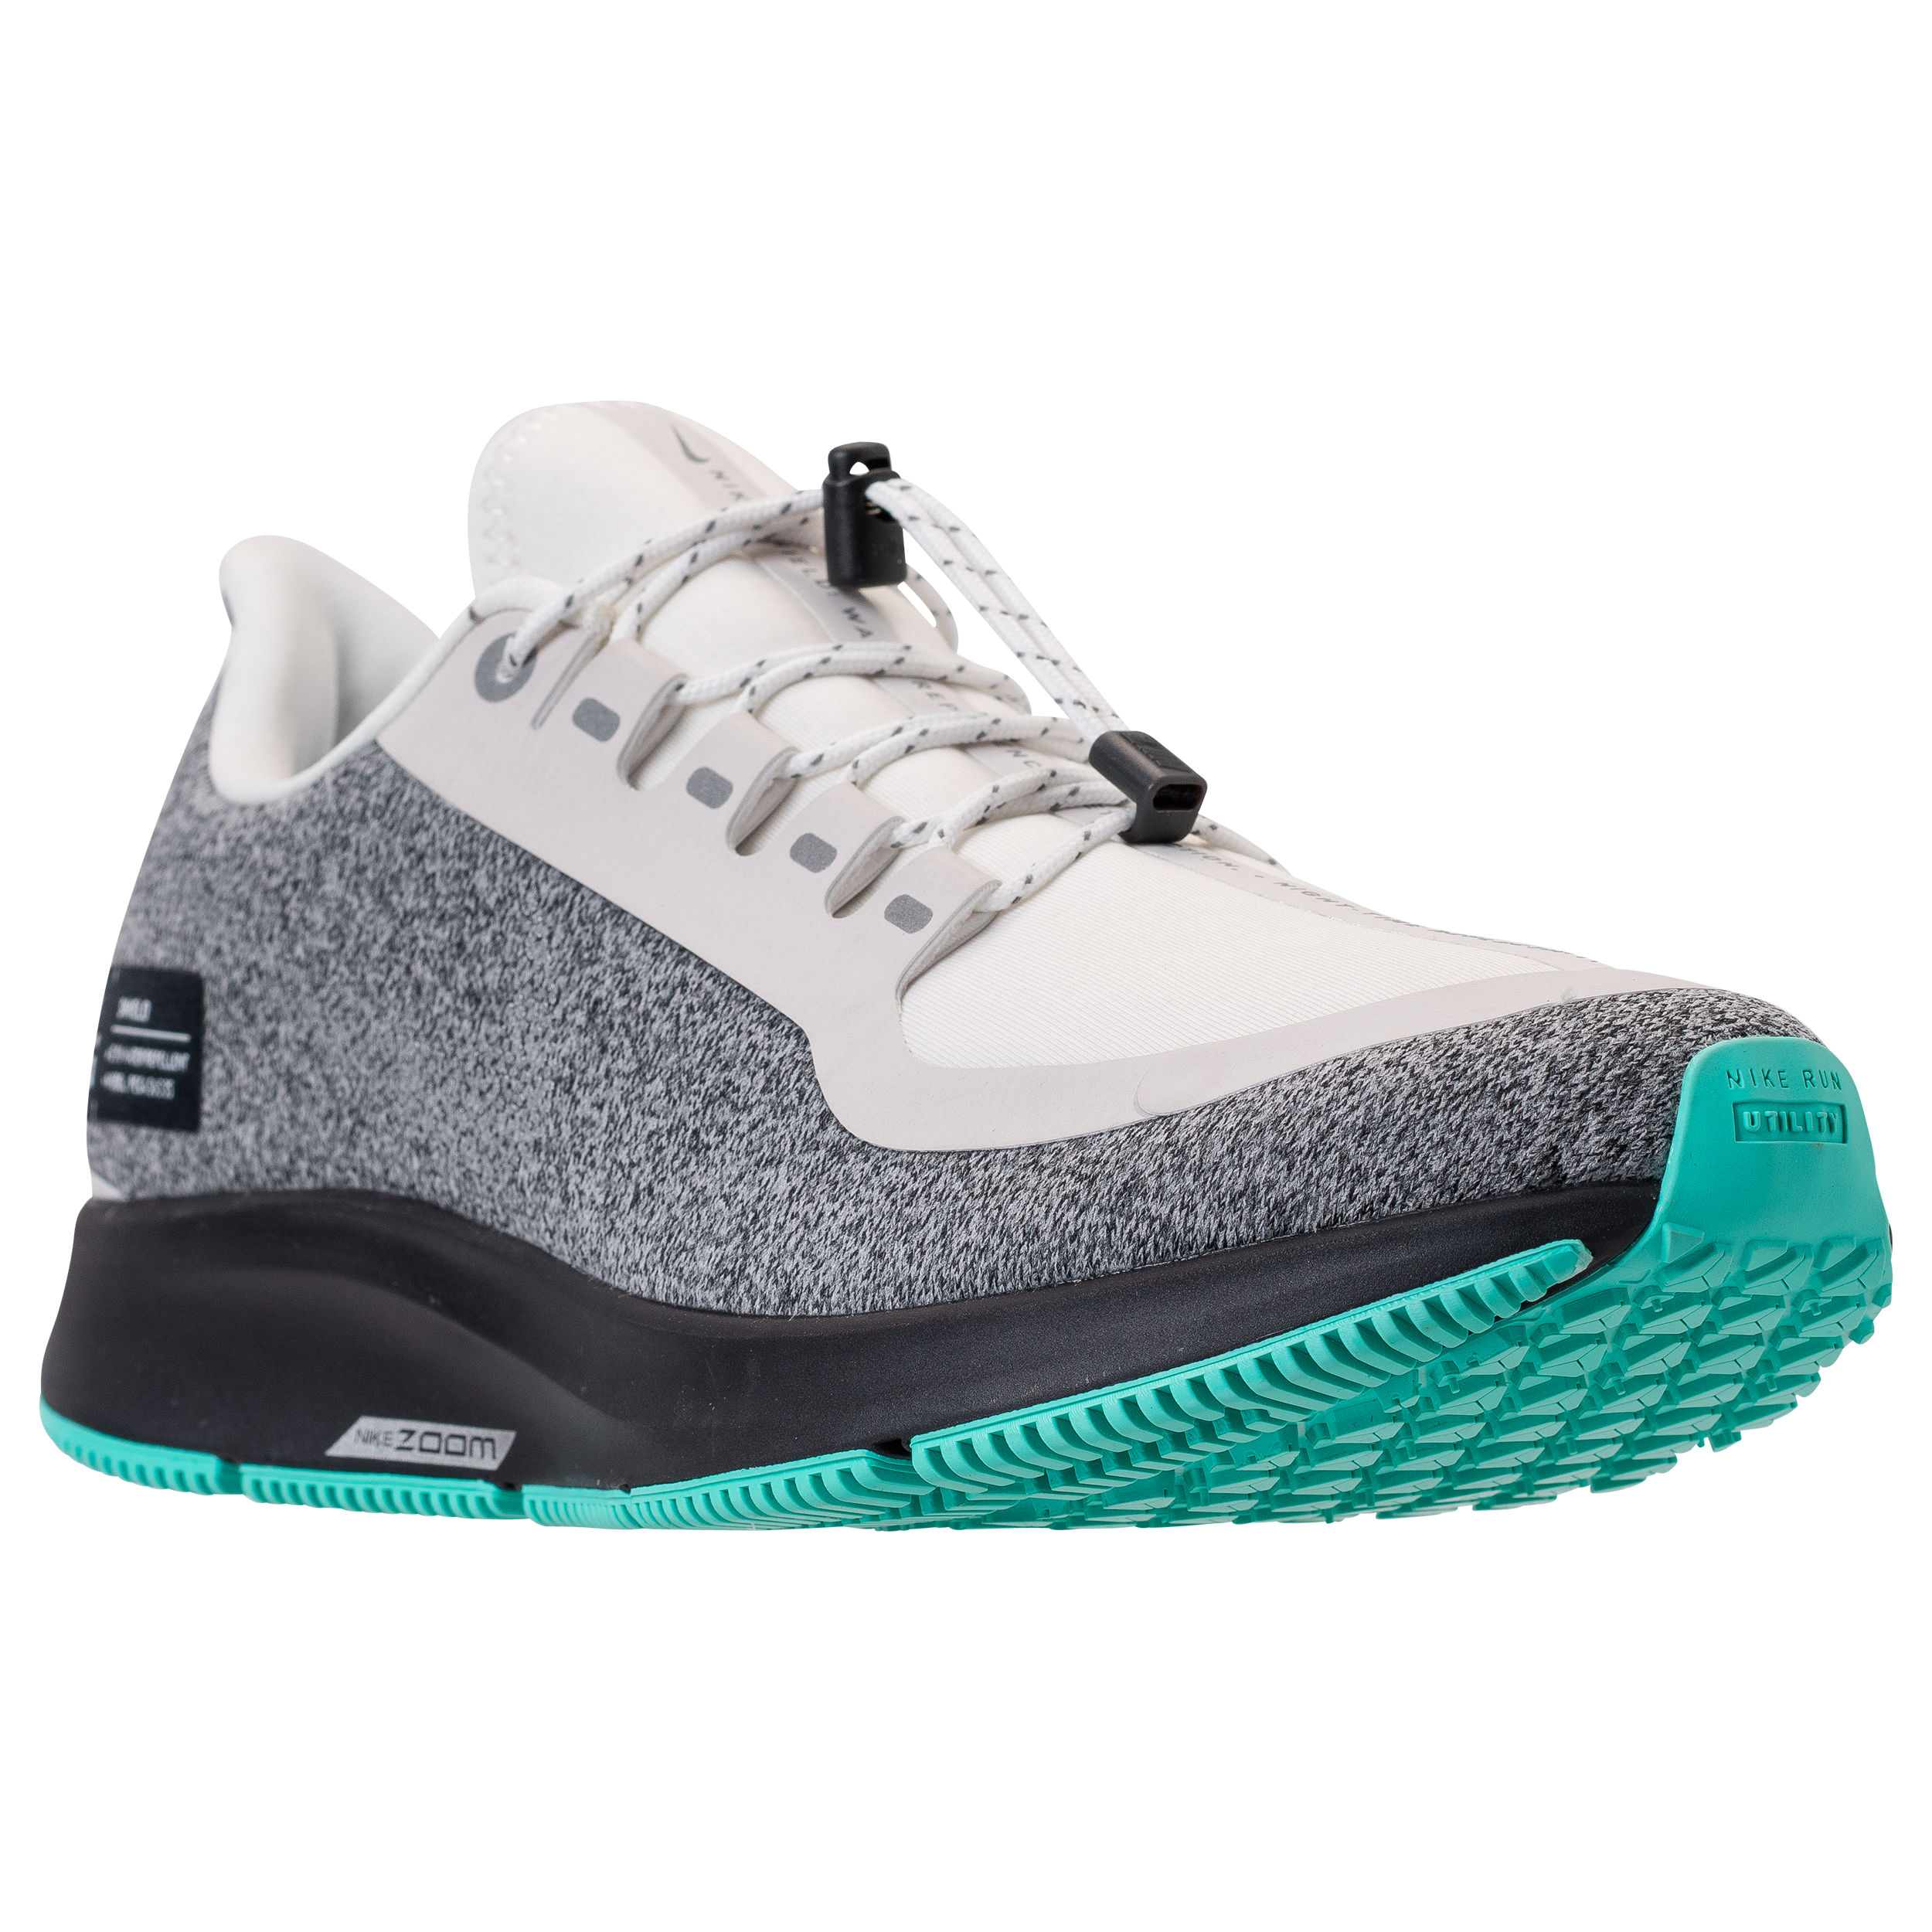 new product e510a c45c2 The Zoom Pegasus 35 Utility is a Winter-Ready Nike Runner ...